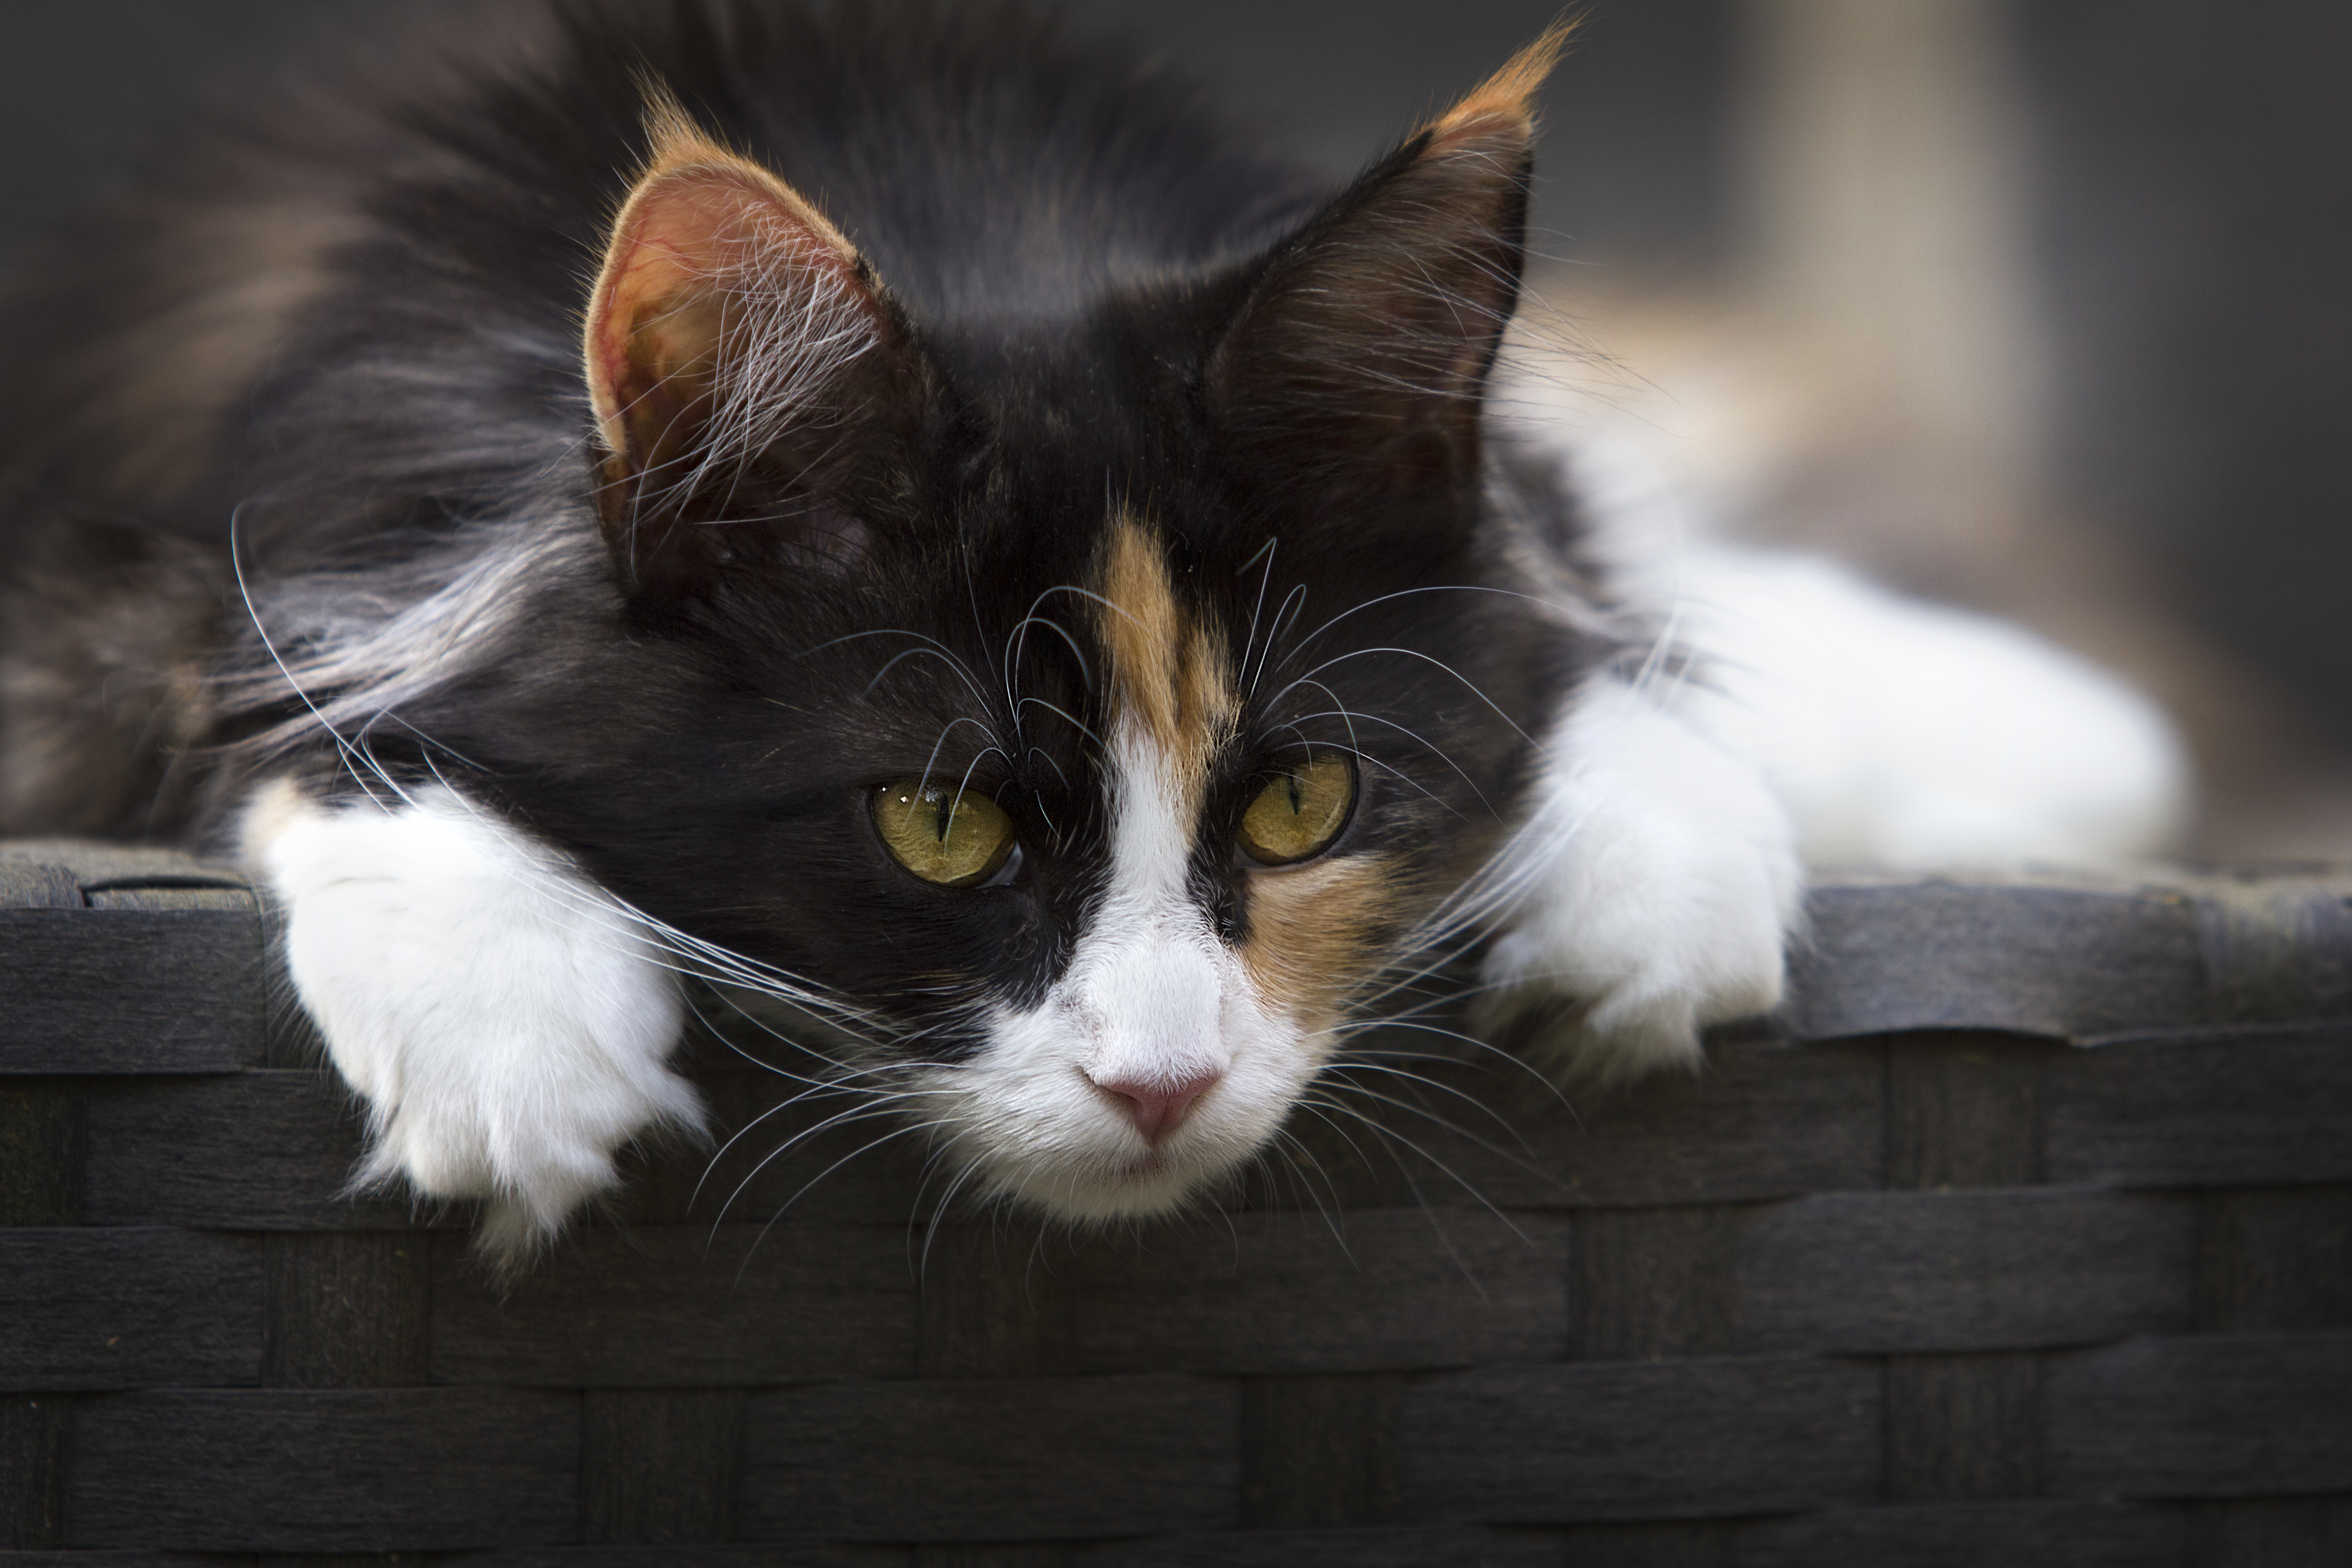 Cute Adorable Wallpapers Calico Cat On Gray Concrete Stair 183 Free Stock Photo